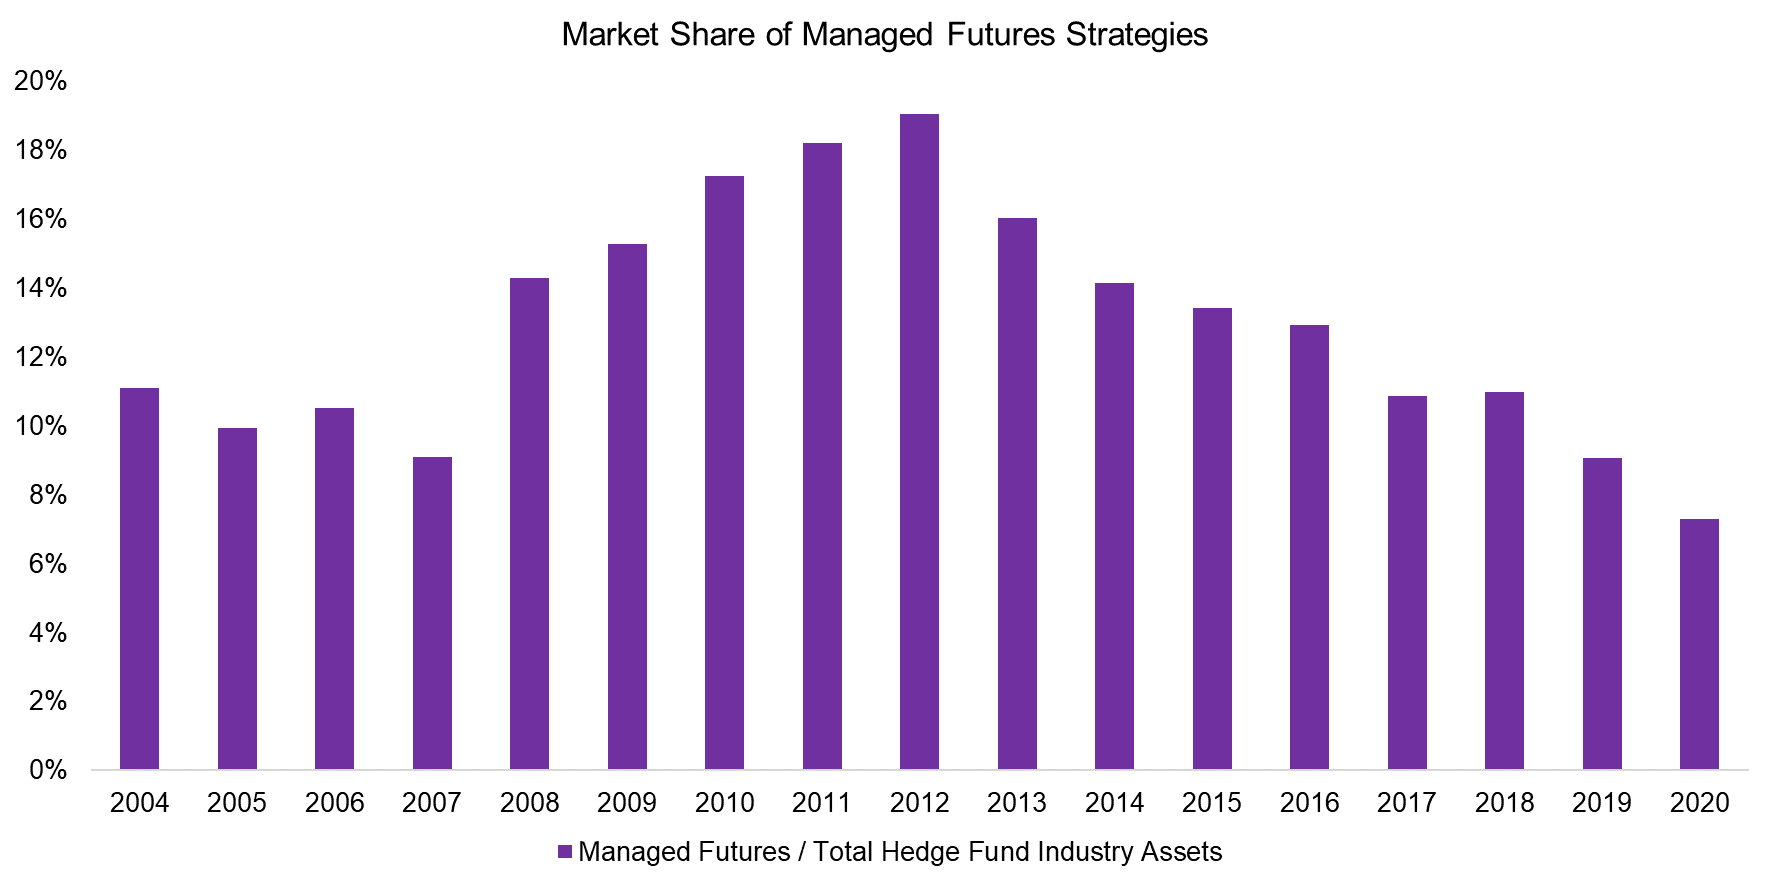 Market Share of Managed Futures Strategies